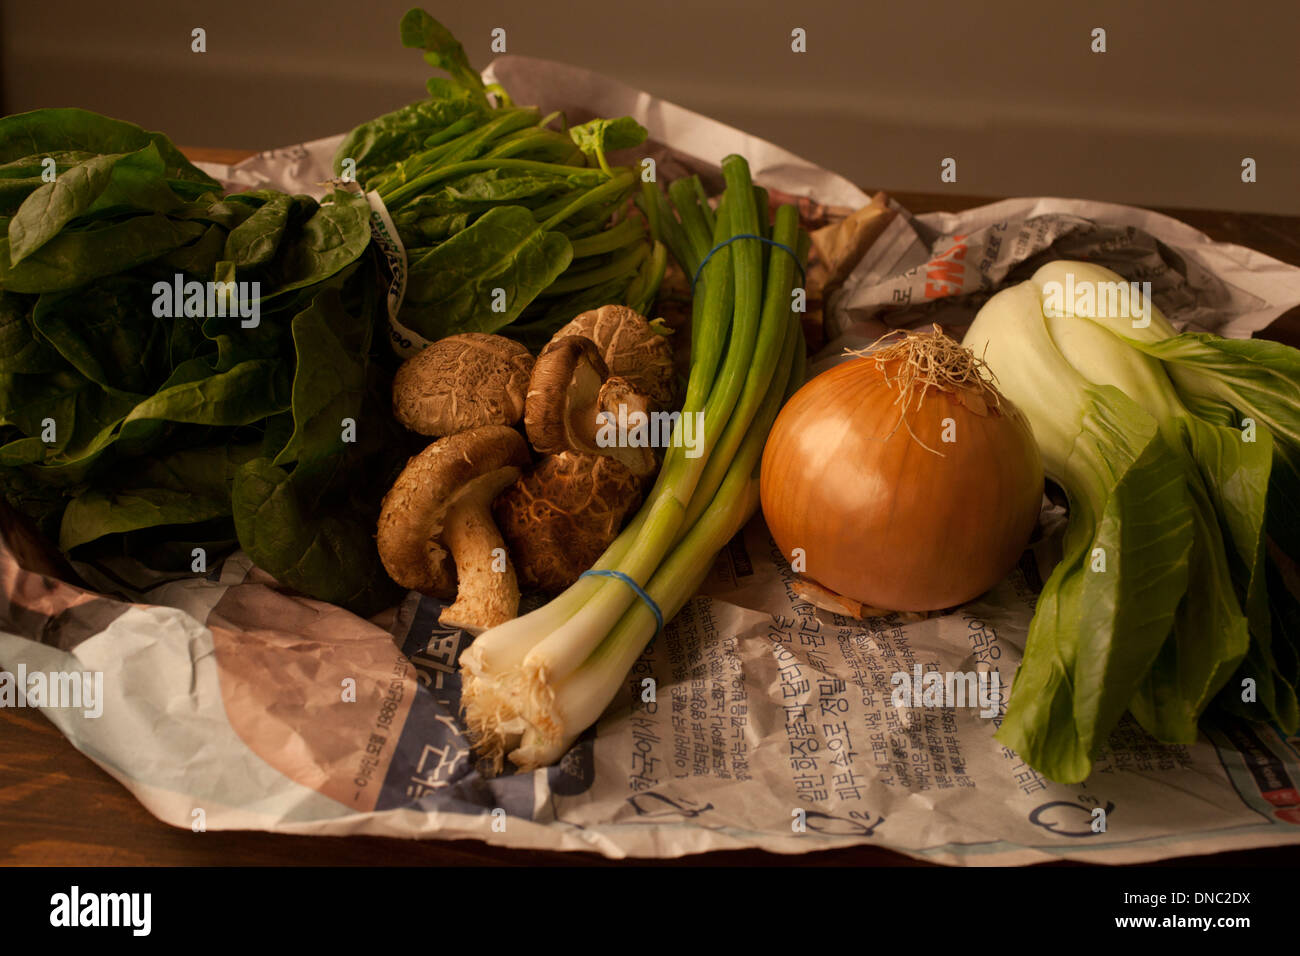 Vegetable still life laid out on table - Stock Image